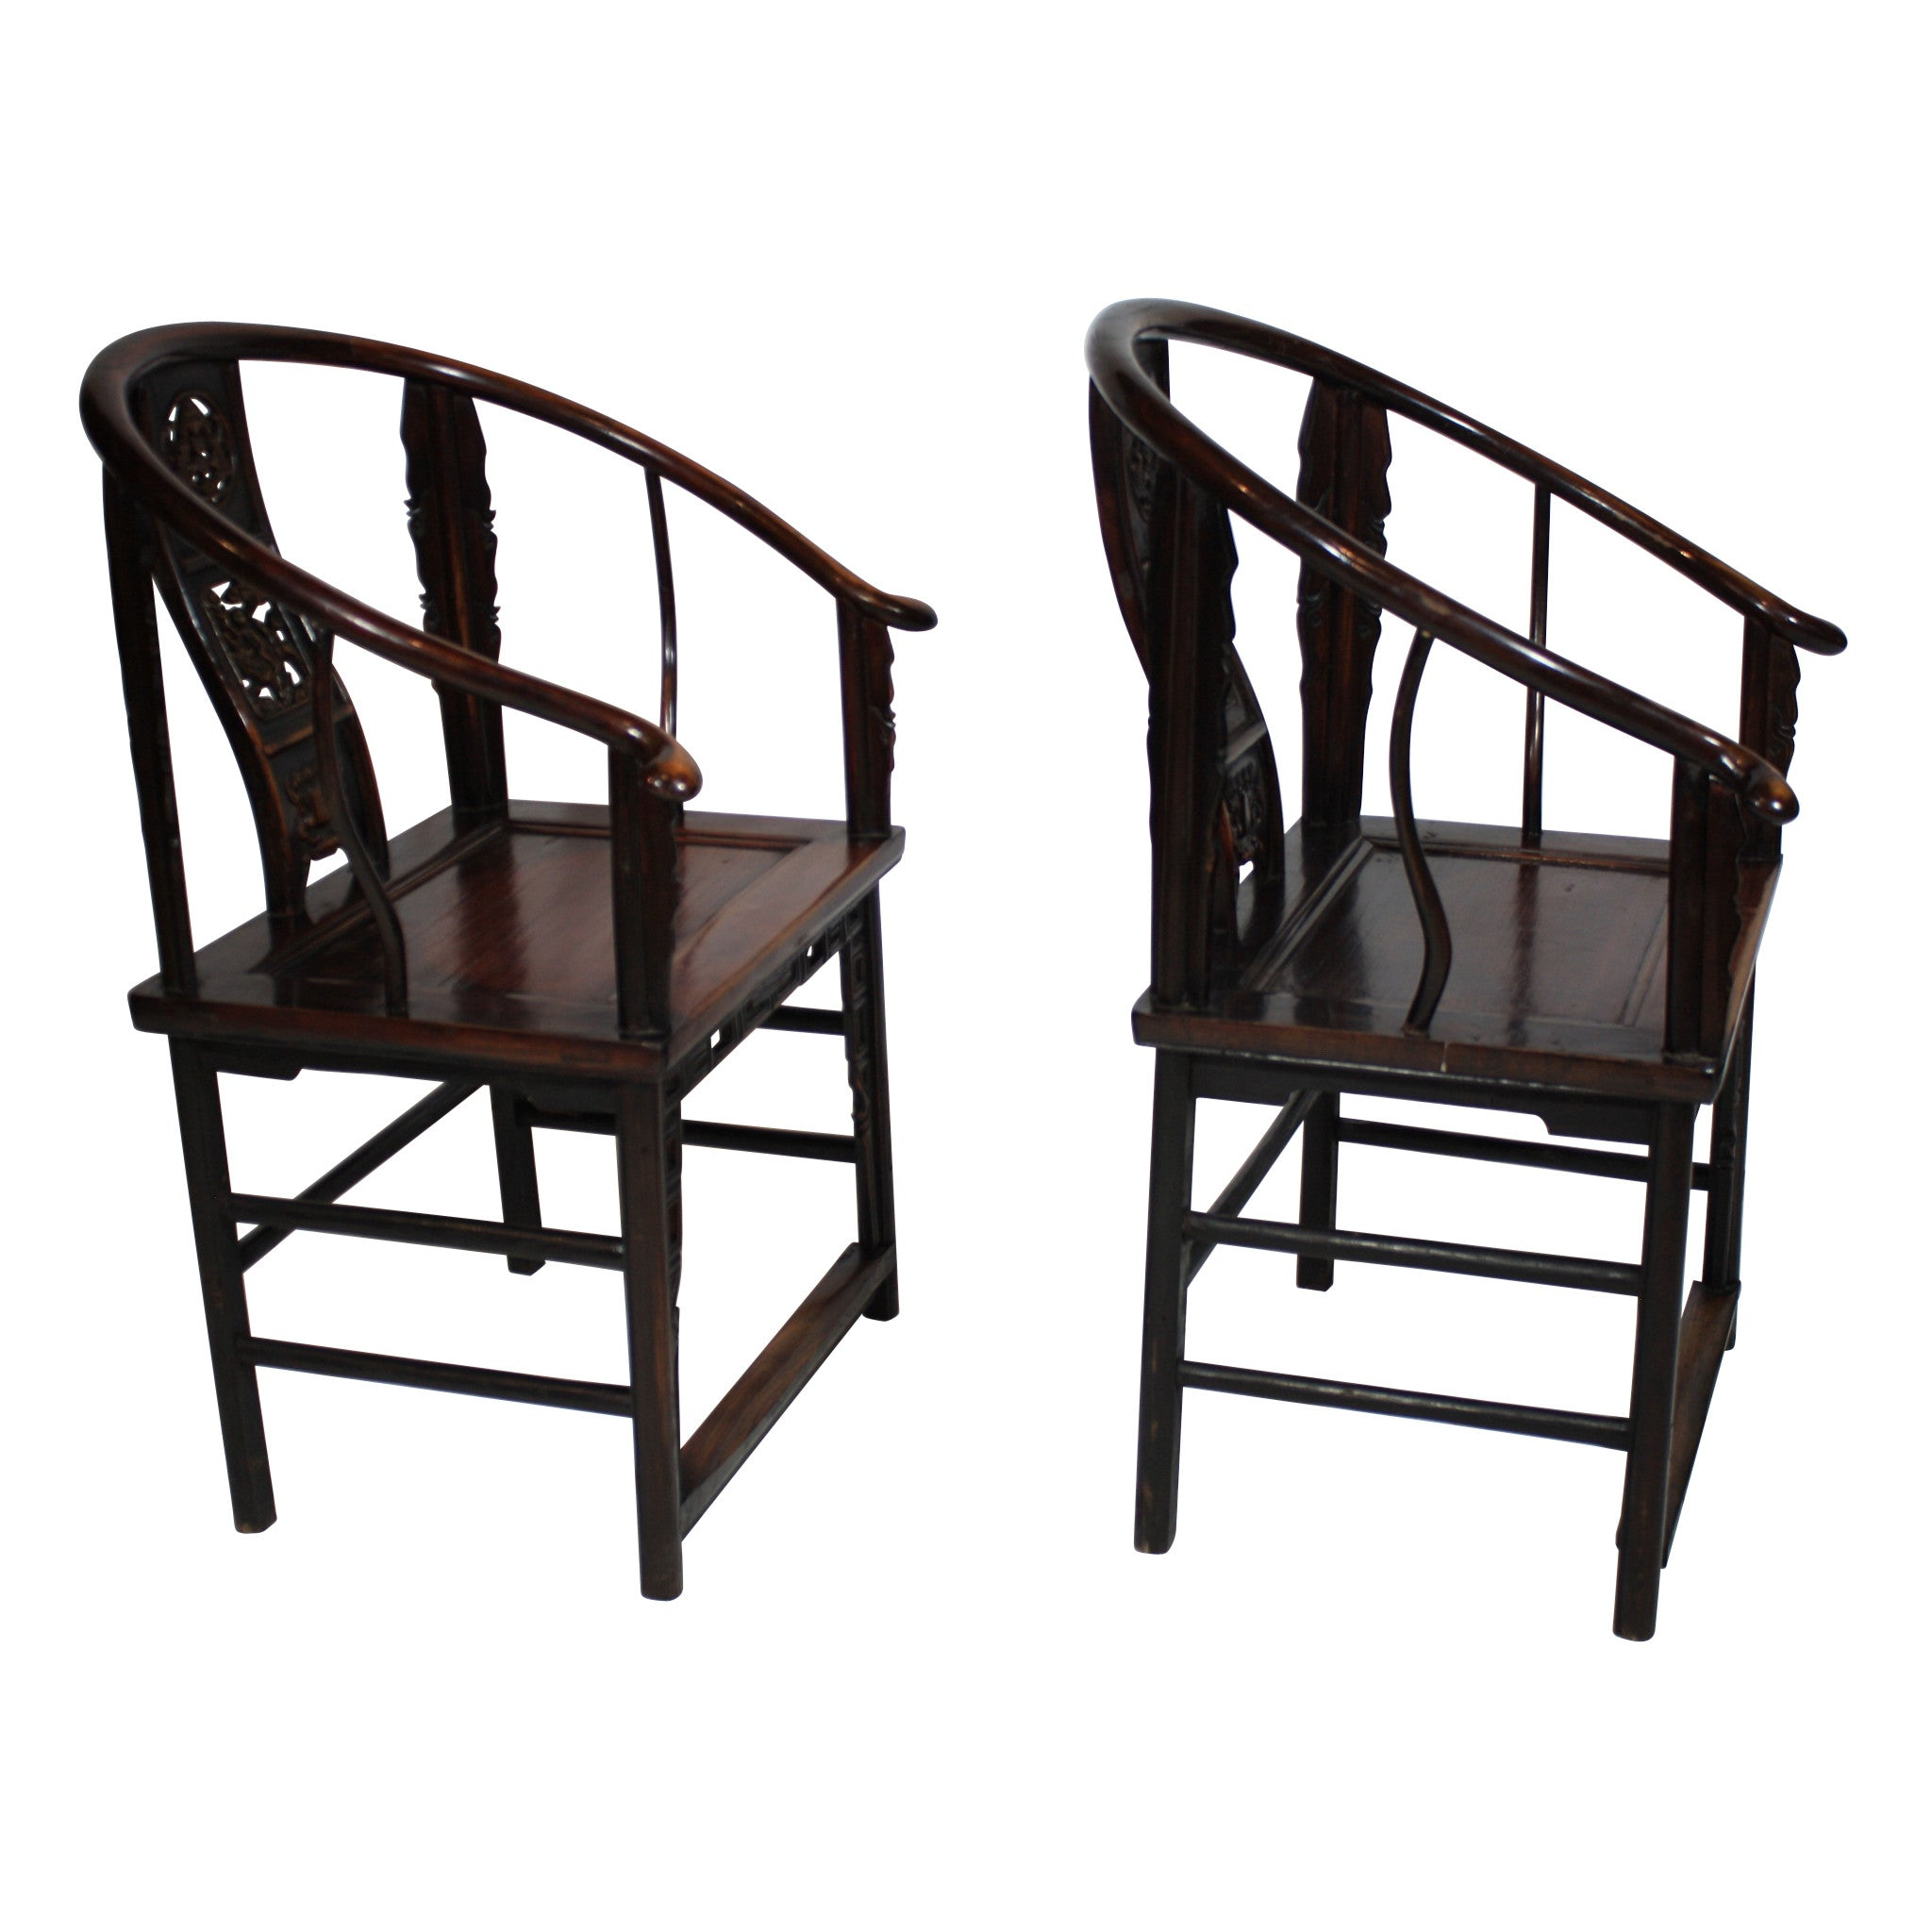 Chinese Armchairs - Set of 2